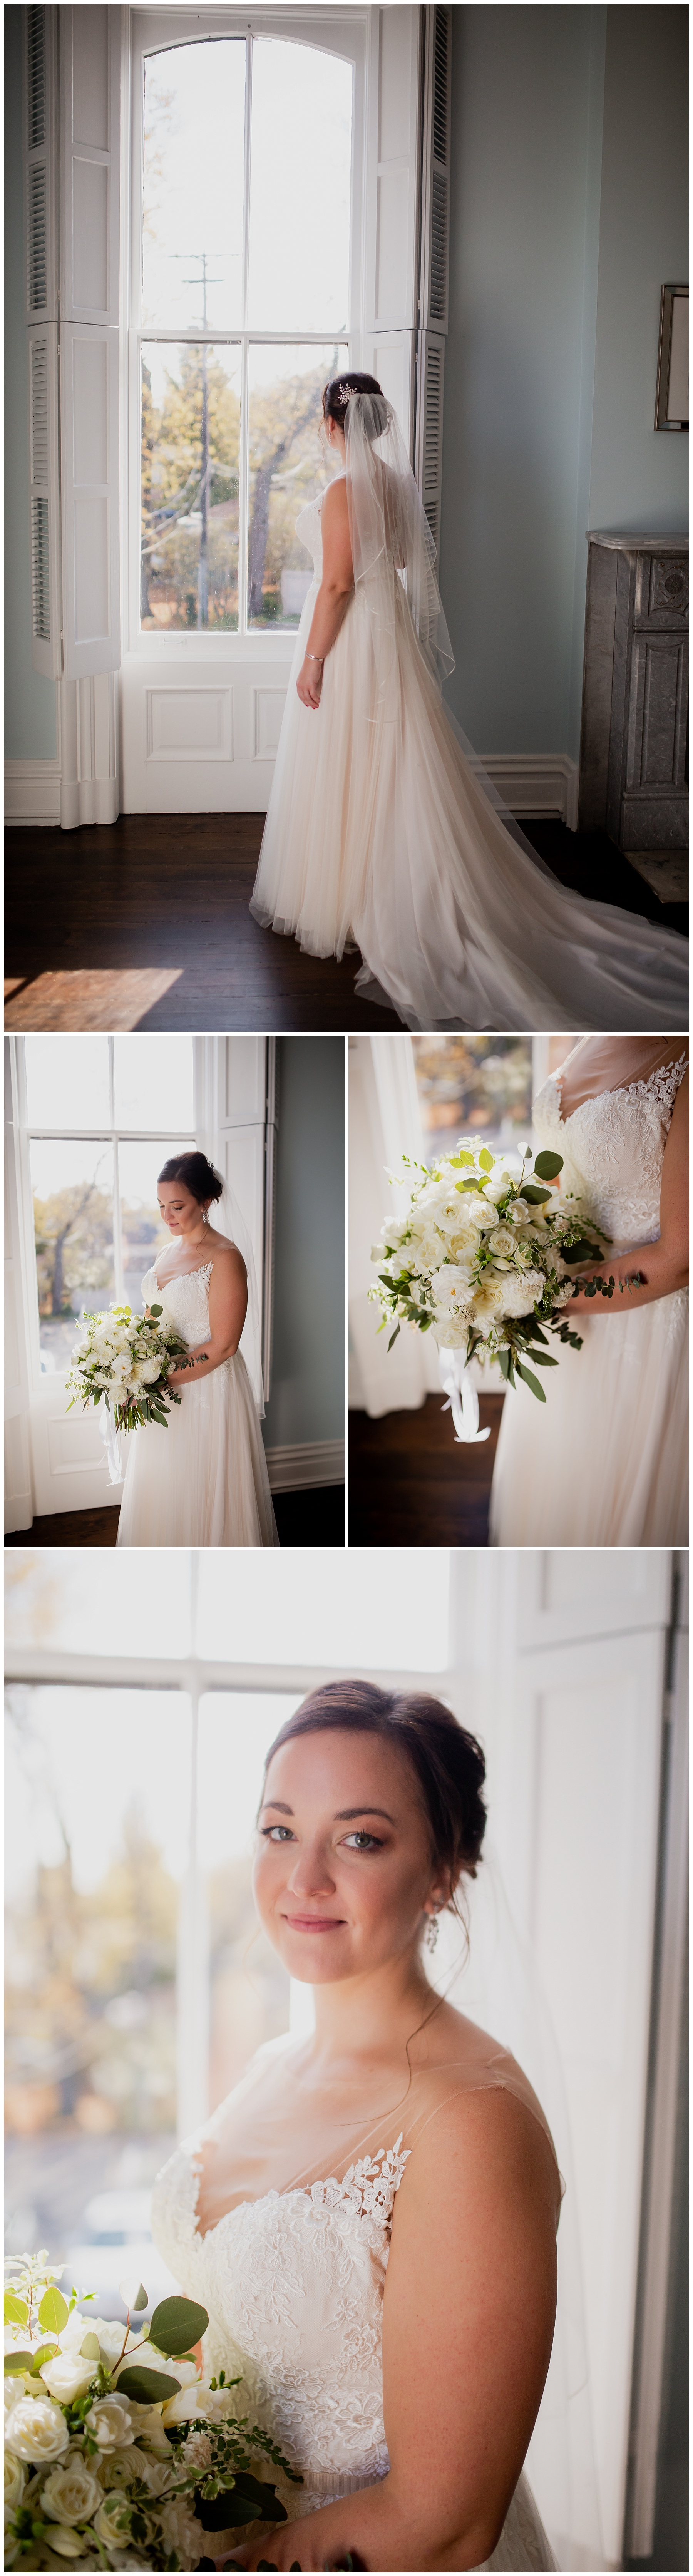 WISCONSIN WEDDING PHOTOGRAPHER -THE COVENANT AT MURRAY MANSION WEDDING-80.jpg